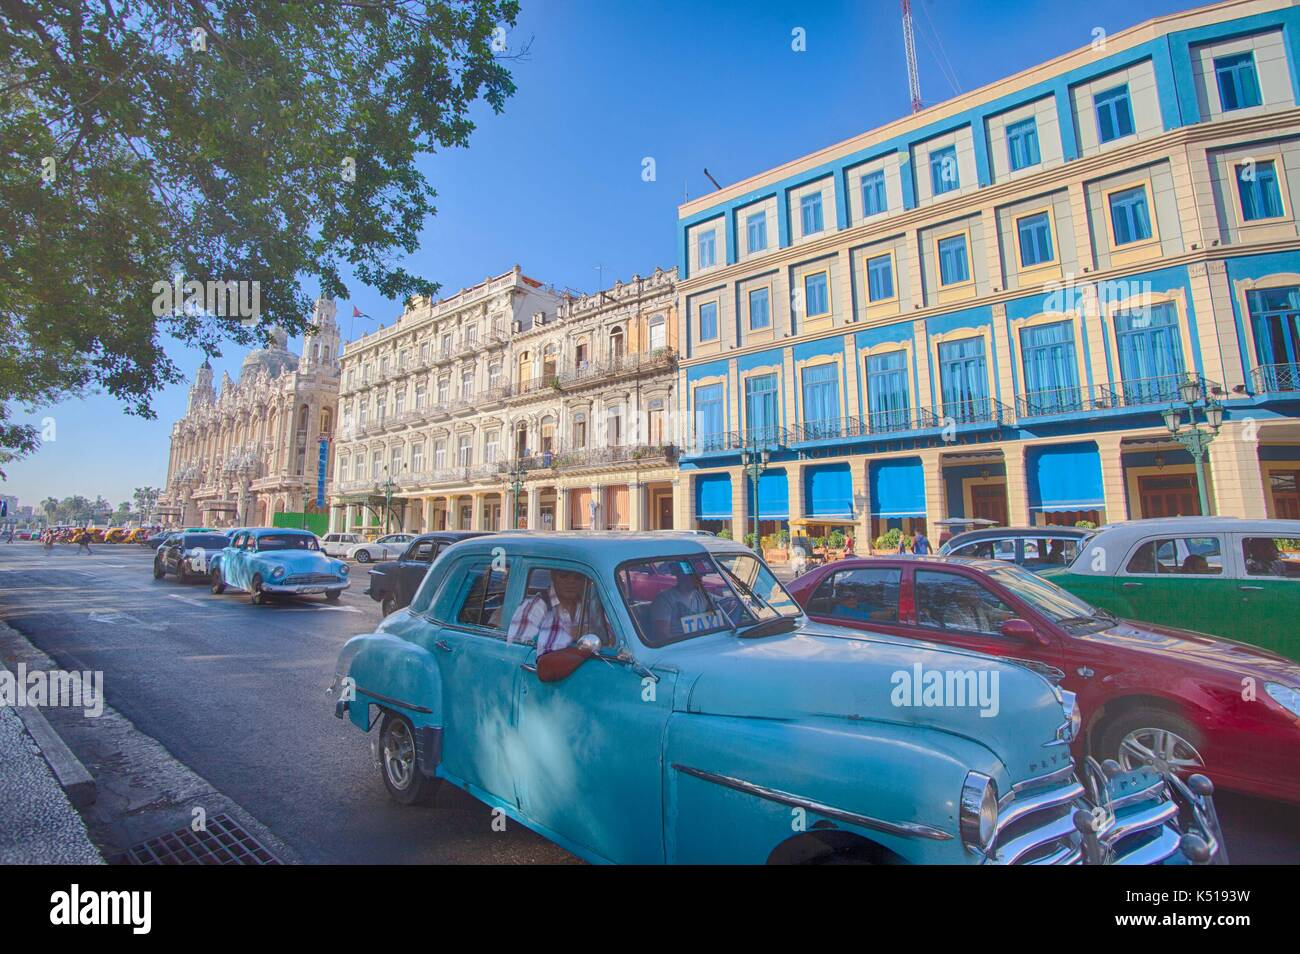 car cuba stockfotos car cuba bilder alamy. Black Bedroom Furniture Sets. Home Design Ideas